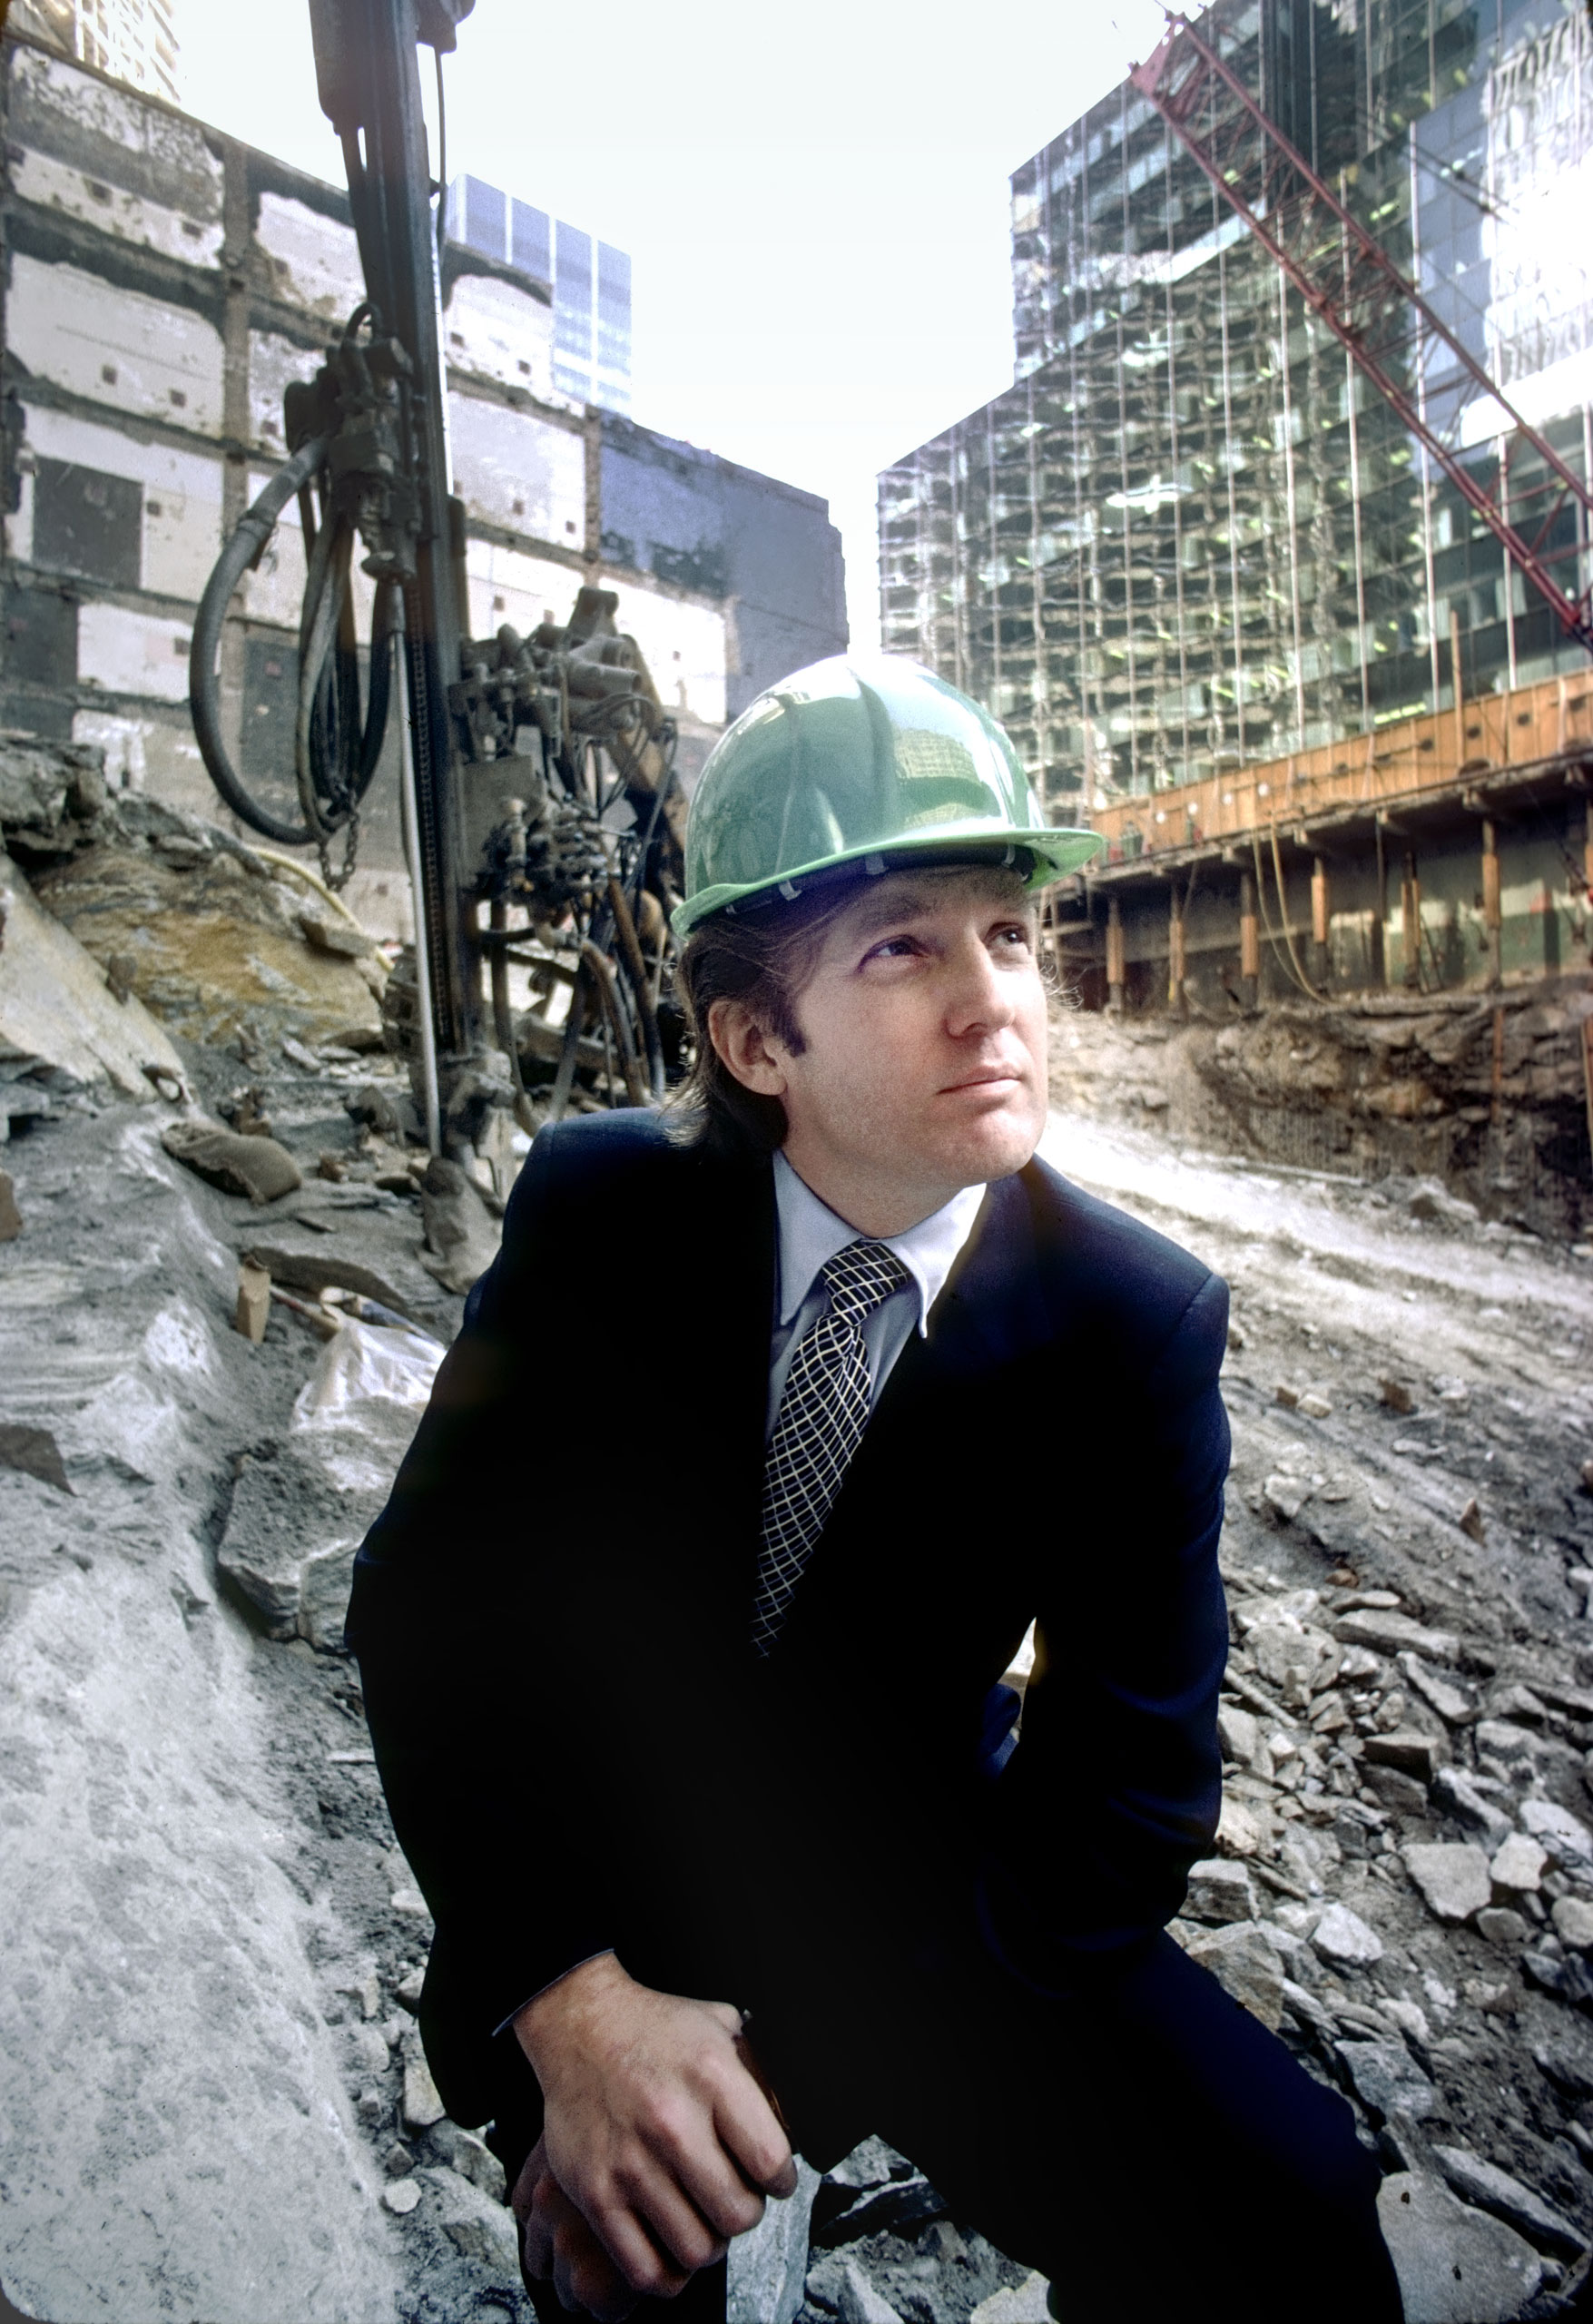 Trump at the future site of Trump Tower in 1980